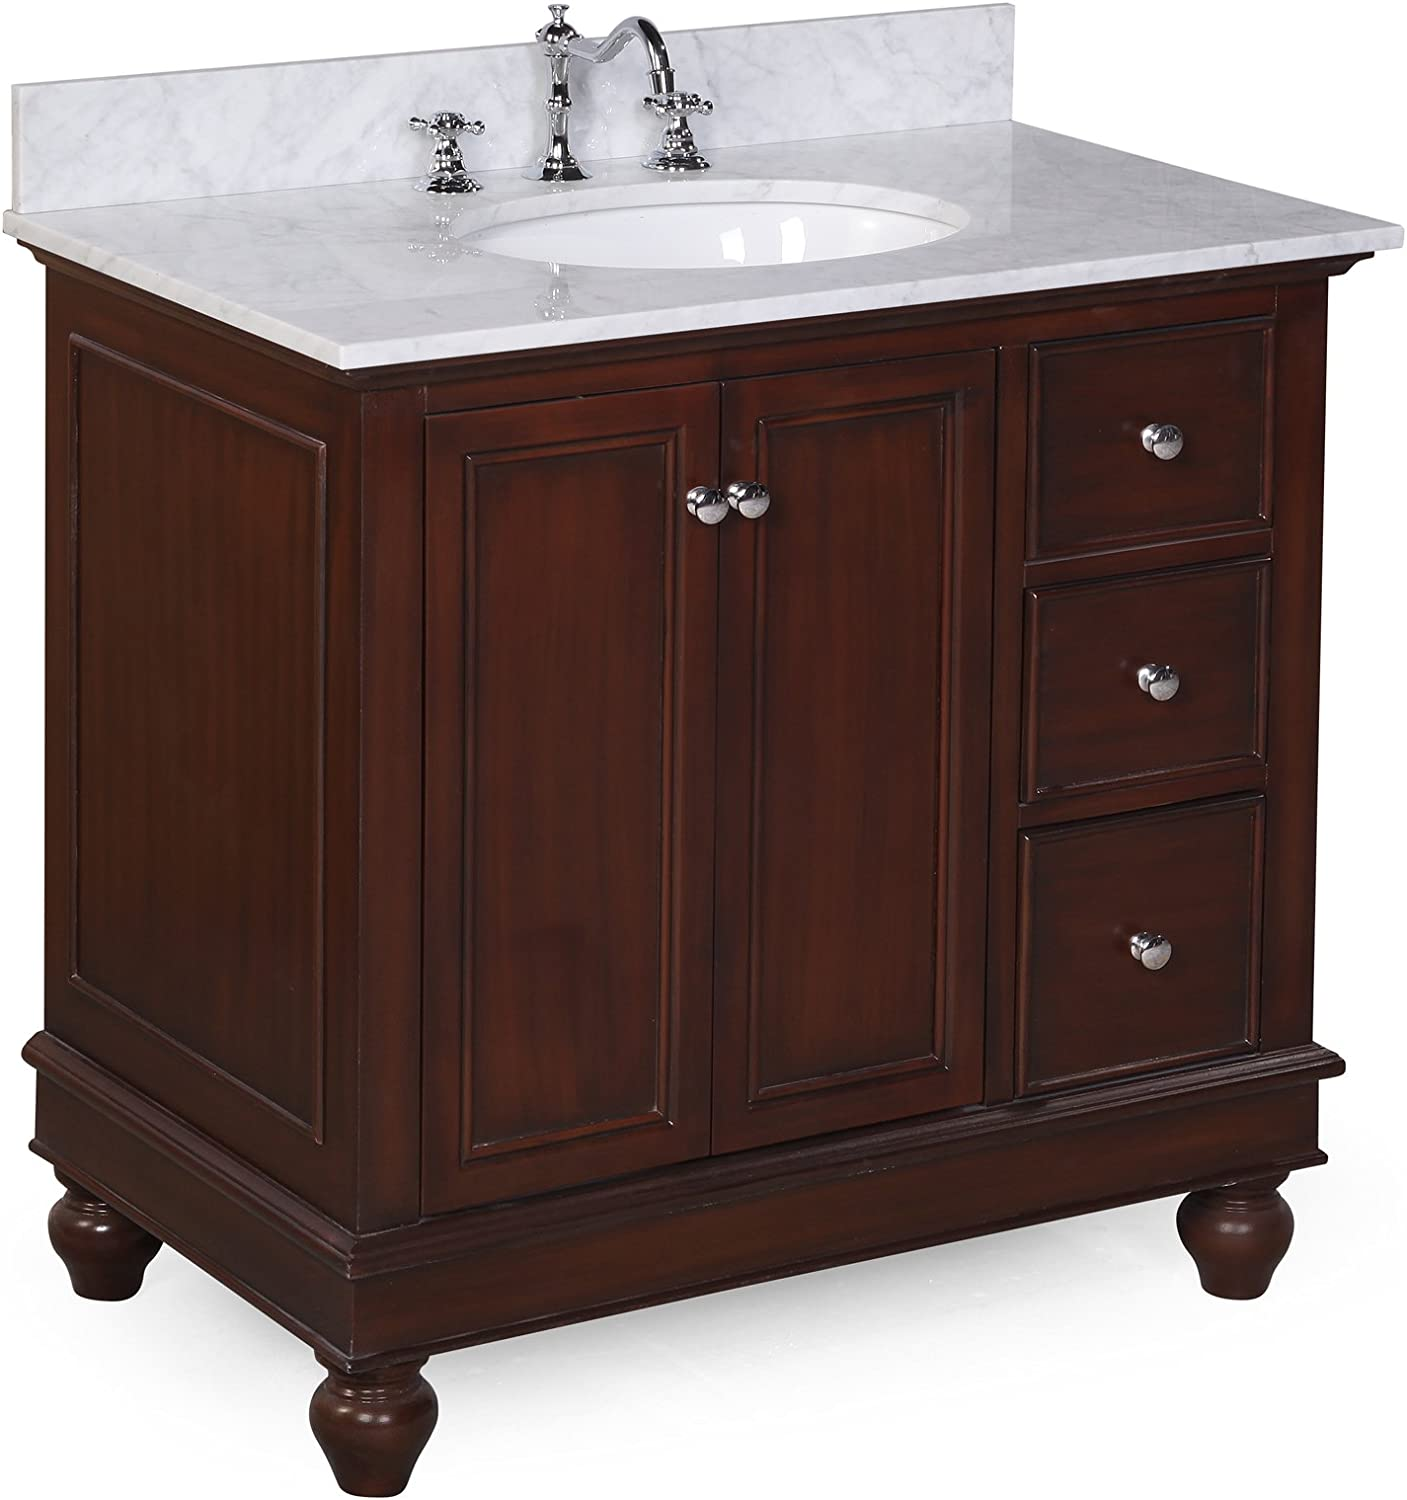 Bella 36-inch Bathroom Vanity Carrara Chocolate Includes a Chocolate Cabinet with Soft Close Drawers, Authentic Italian Carrara Marble Countertop, and White Ceramic Sink